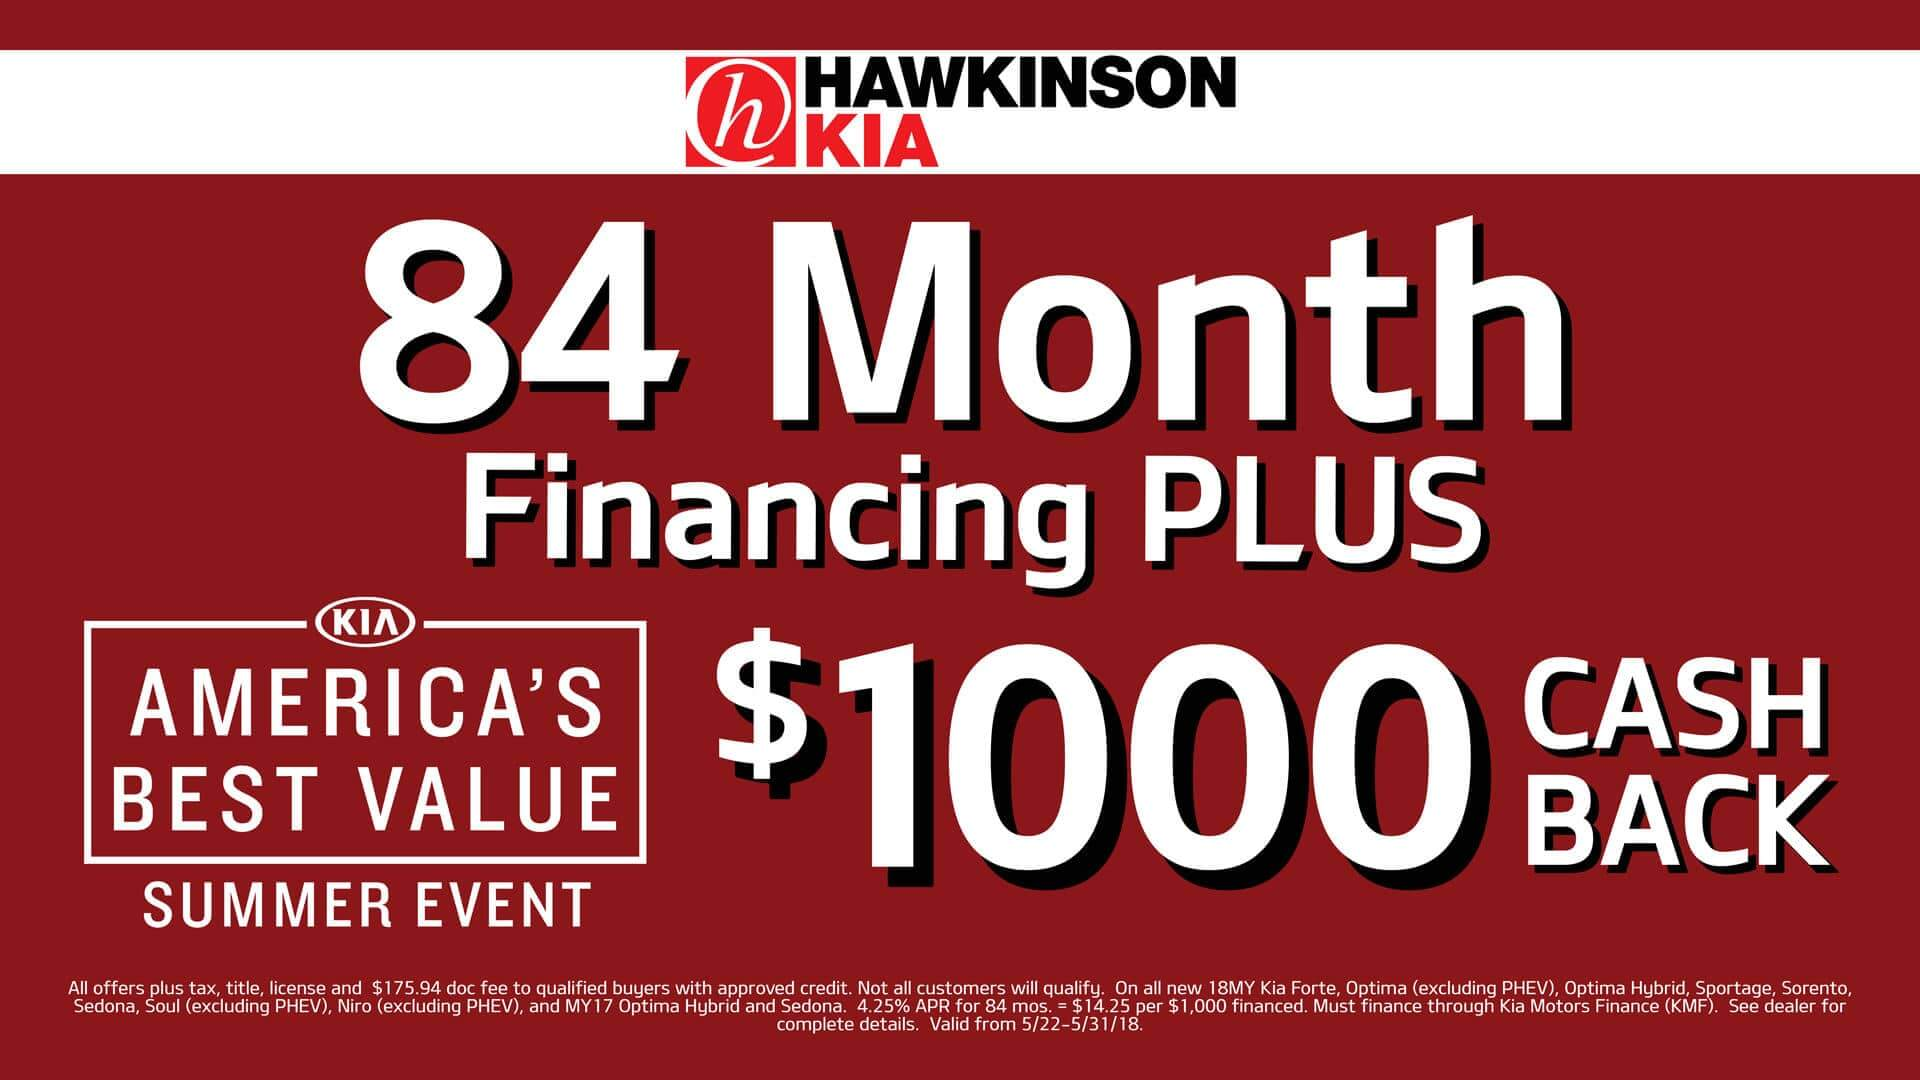 84 Months Financing PLUS